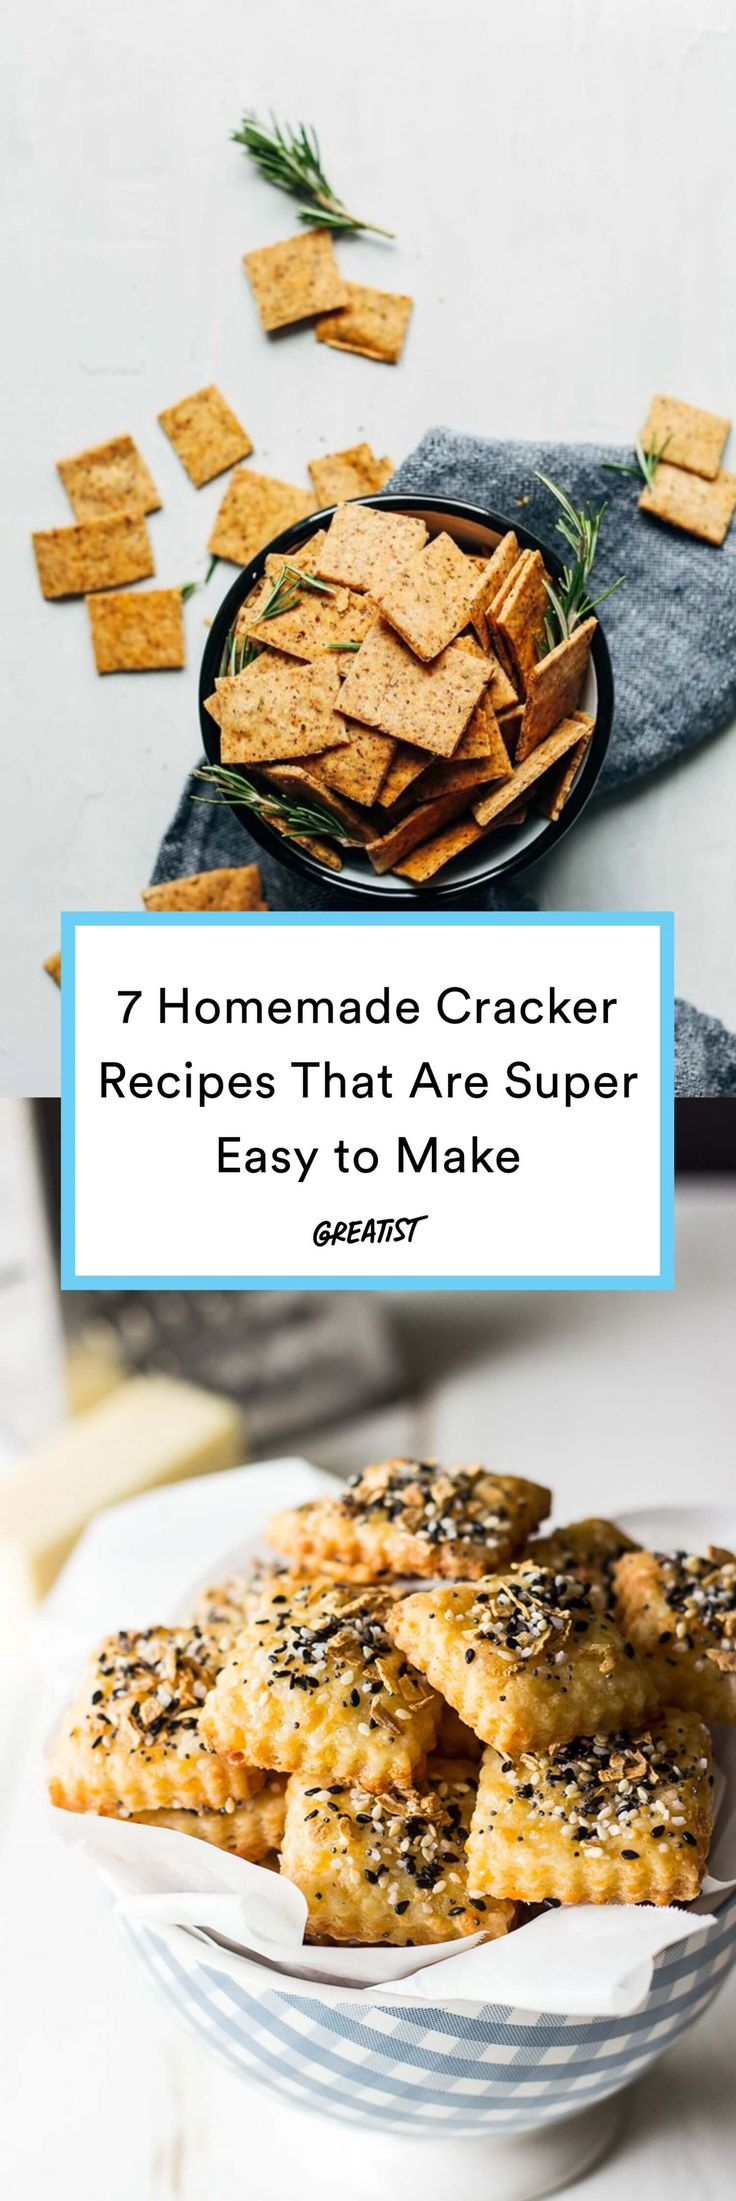 Time to get crackin' in the kitchen. #greatist htt…